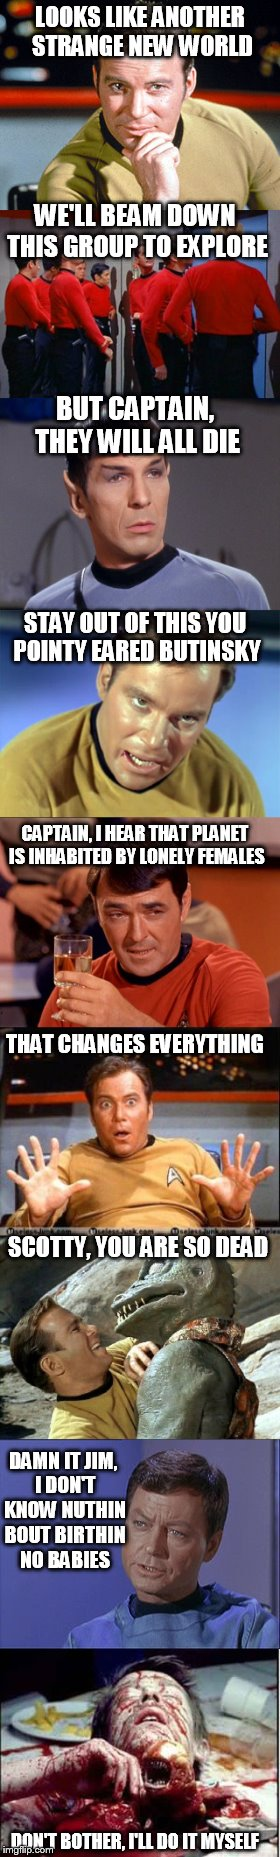 Star Trek vs... | LOOKS LIKE ANOTHER STRANGE NEW WORLD WE'LL BEAM DOWN THIS GROUP TO EXPLORE BUT CAPTAIN, THEY WILL ALL DIE STAY OUT OF THIS YOU POINTY EARED  | image tagged in memes,funny,star trek,kirk,alien | made w/ Imgflip meme maker